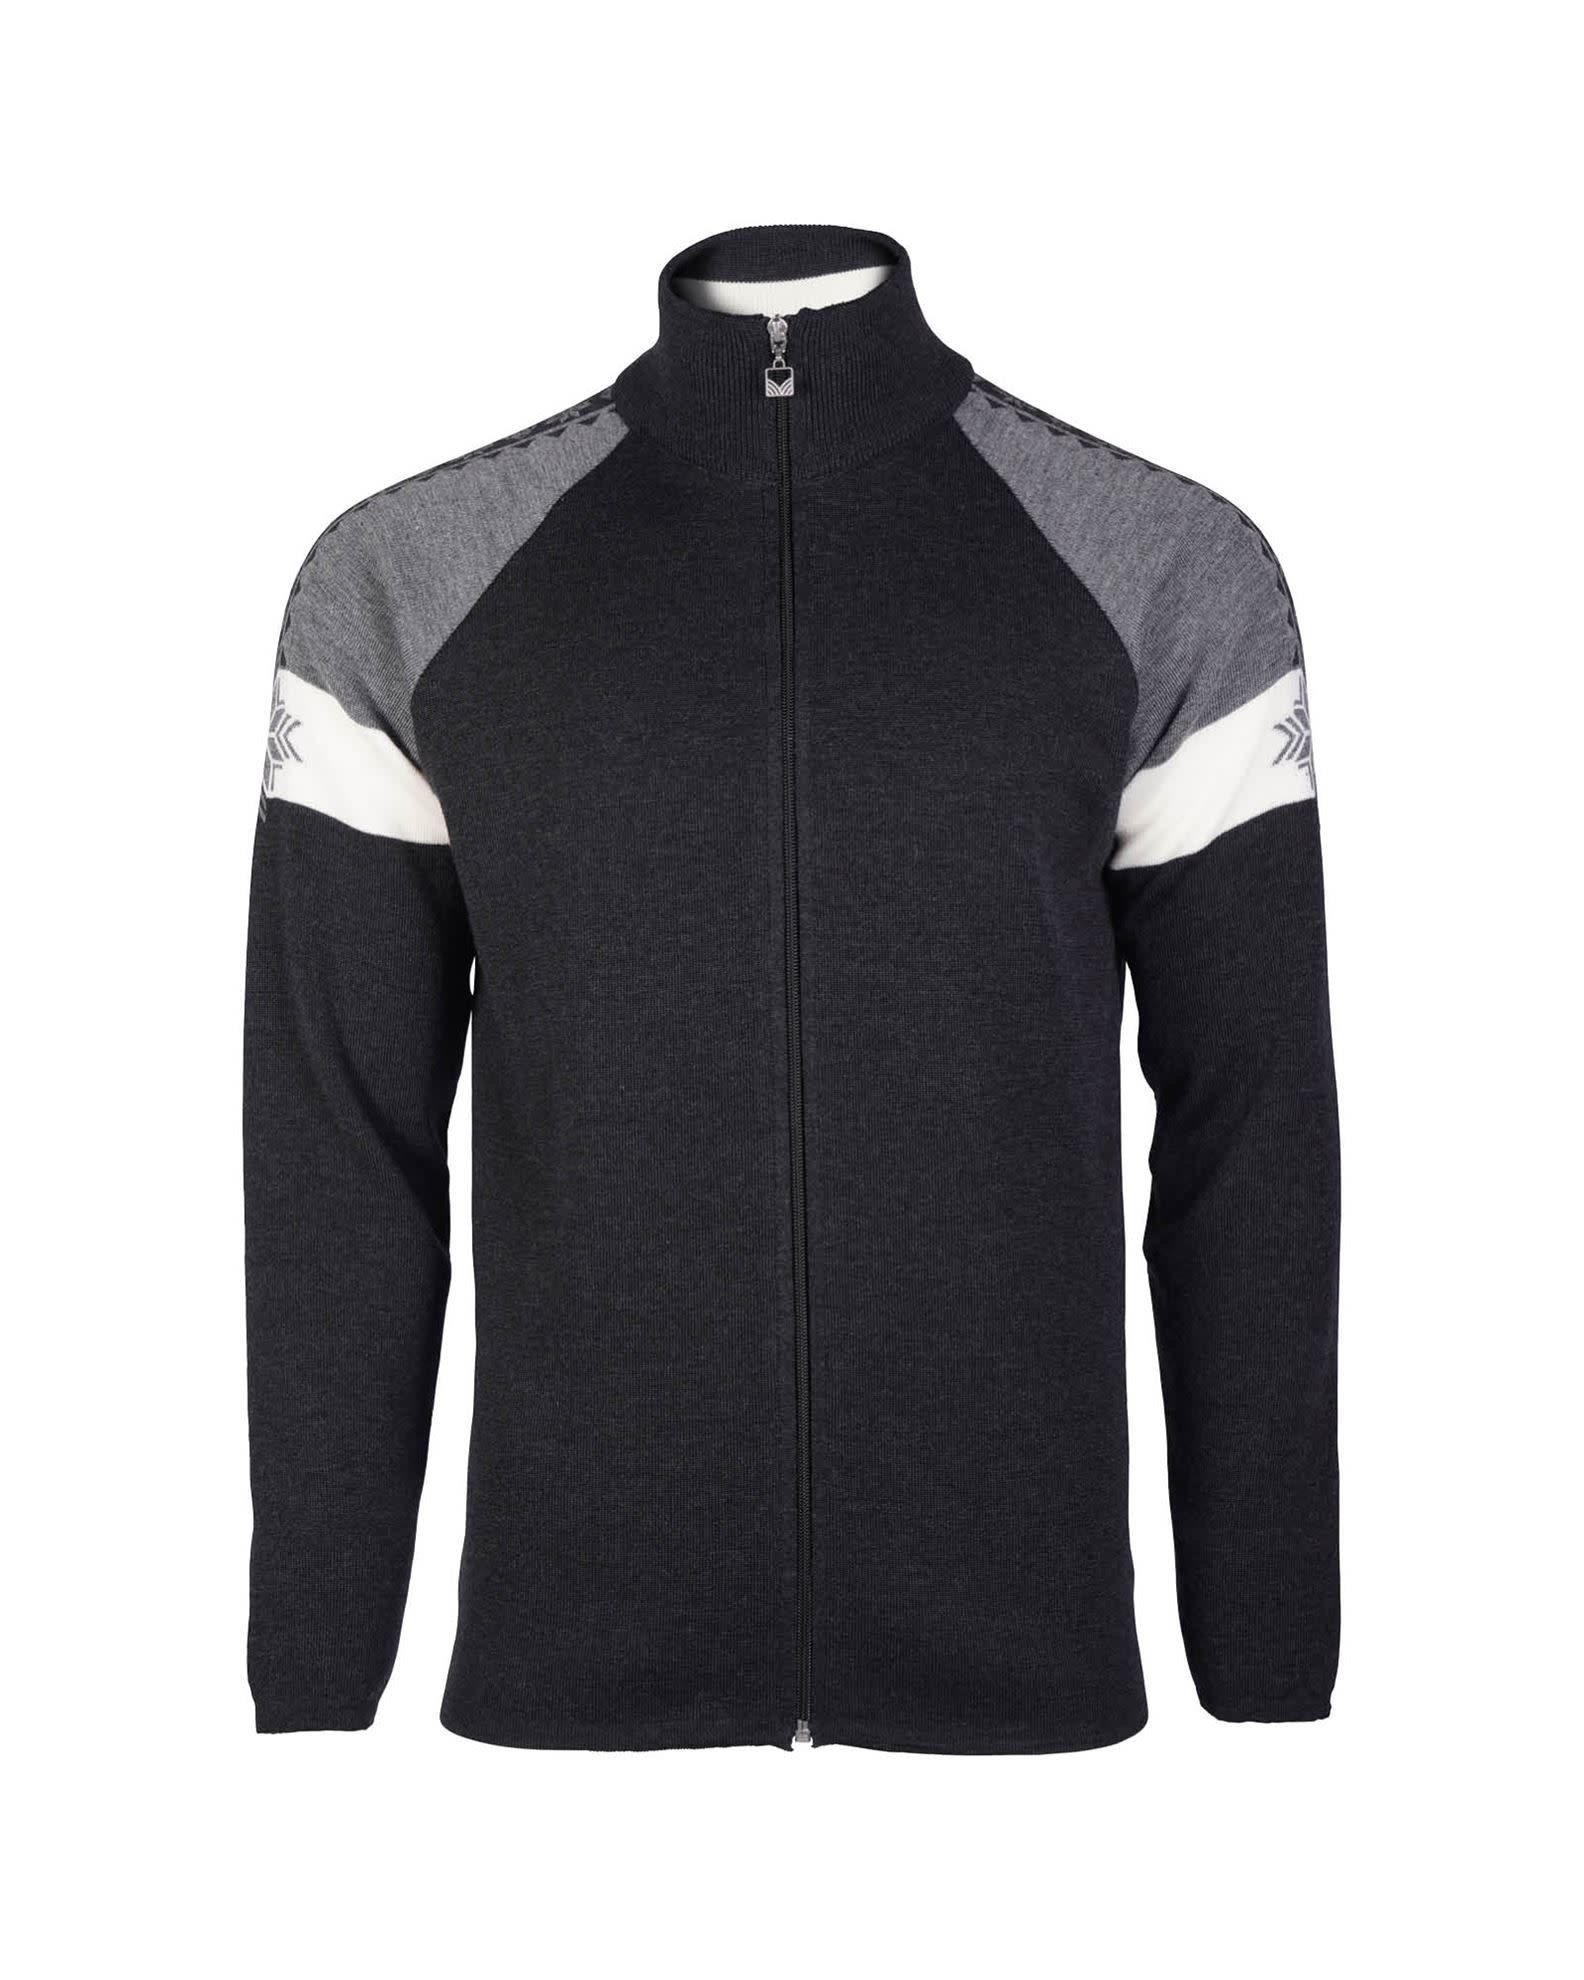 Dale of Norway Dale of Norway Geilo Masc Jacket